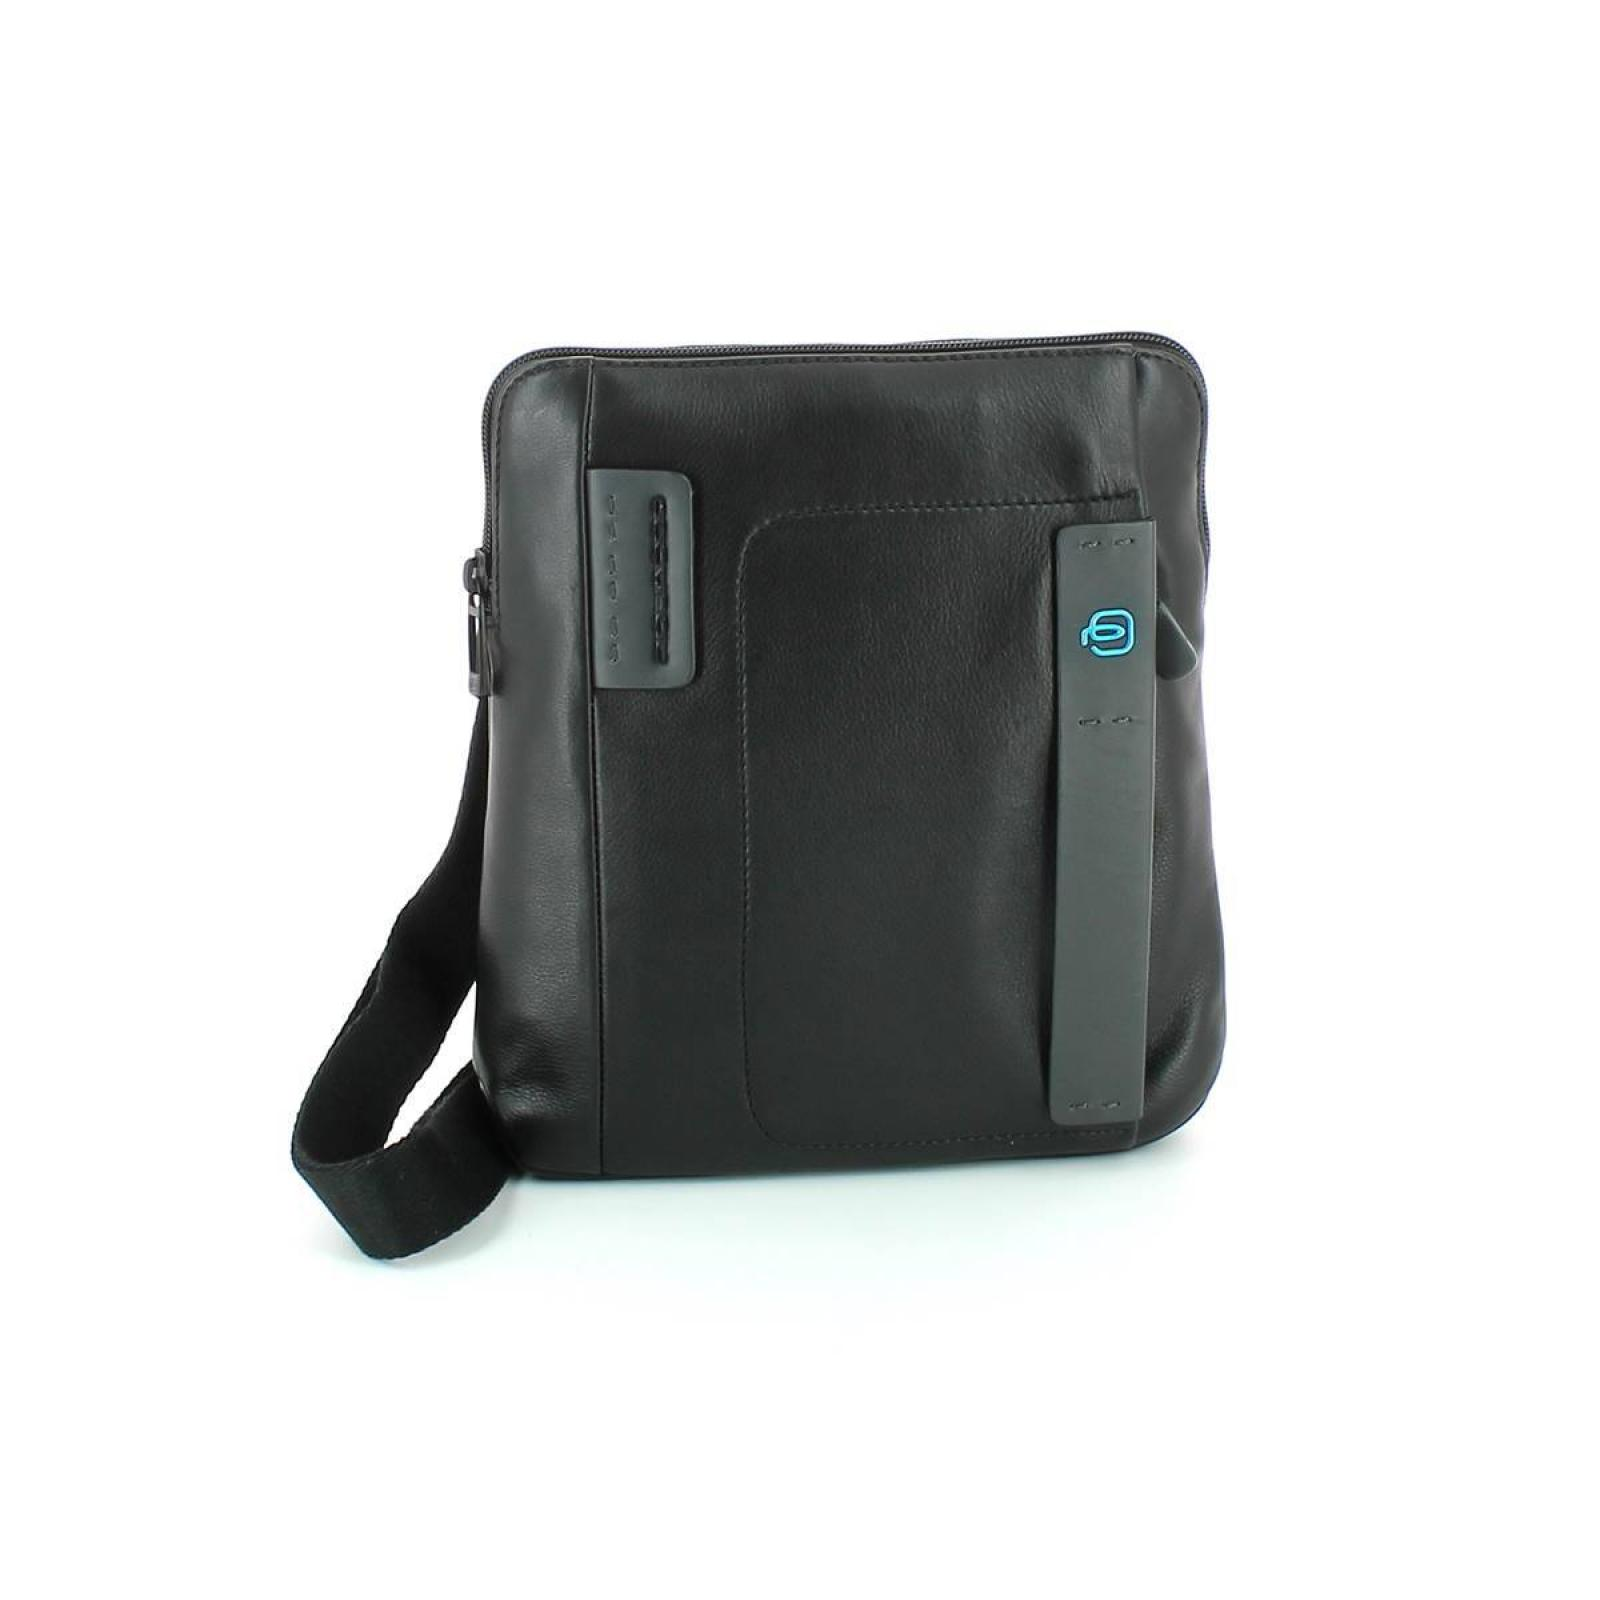 Pulse P15 Crossbody Bag